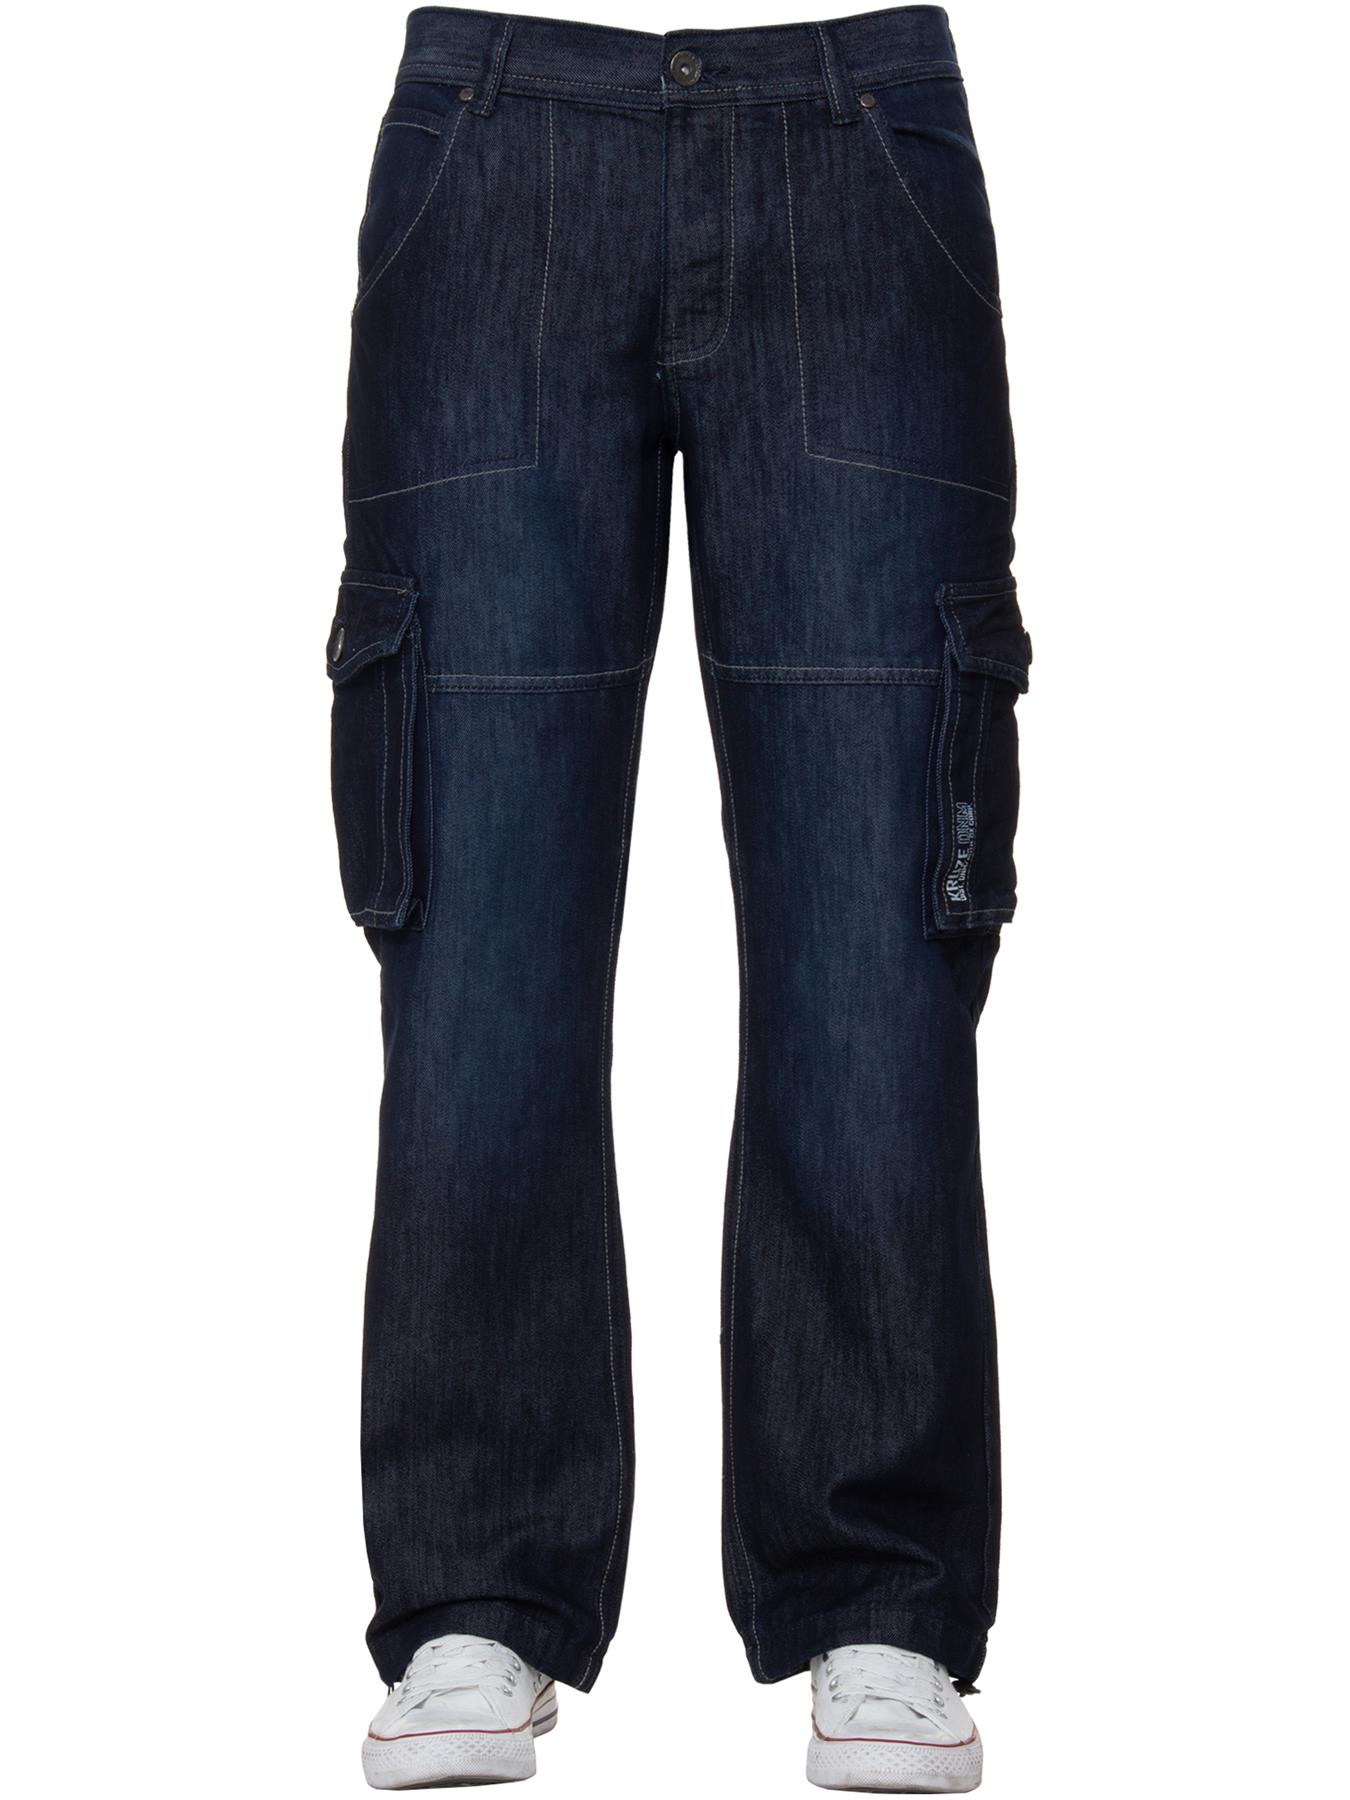 Kruze-Mens-Cargo-Combat-Jeans-Casual-Work-Denim-Pants-Big-Tall-All-Waist-Sizes thumbnail 25